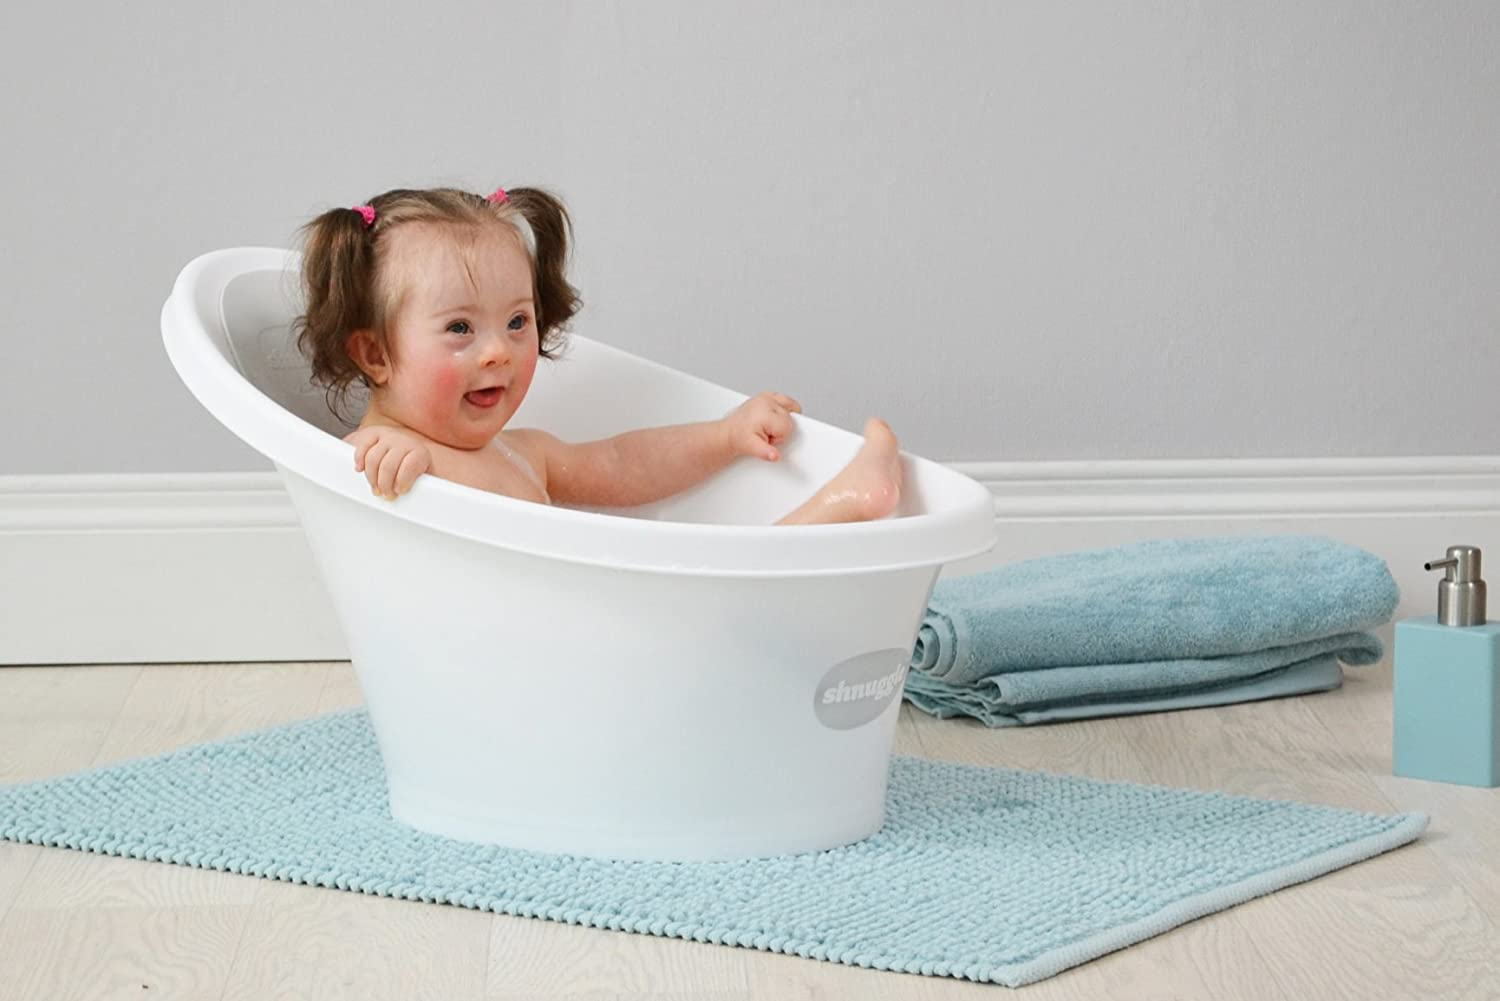 Amazon.com : Shnuggle Bath with Backrest, White with Pink : Baby